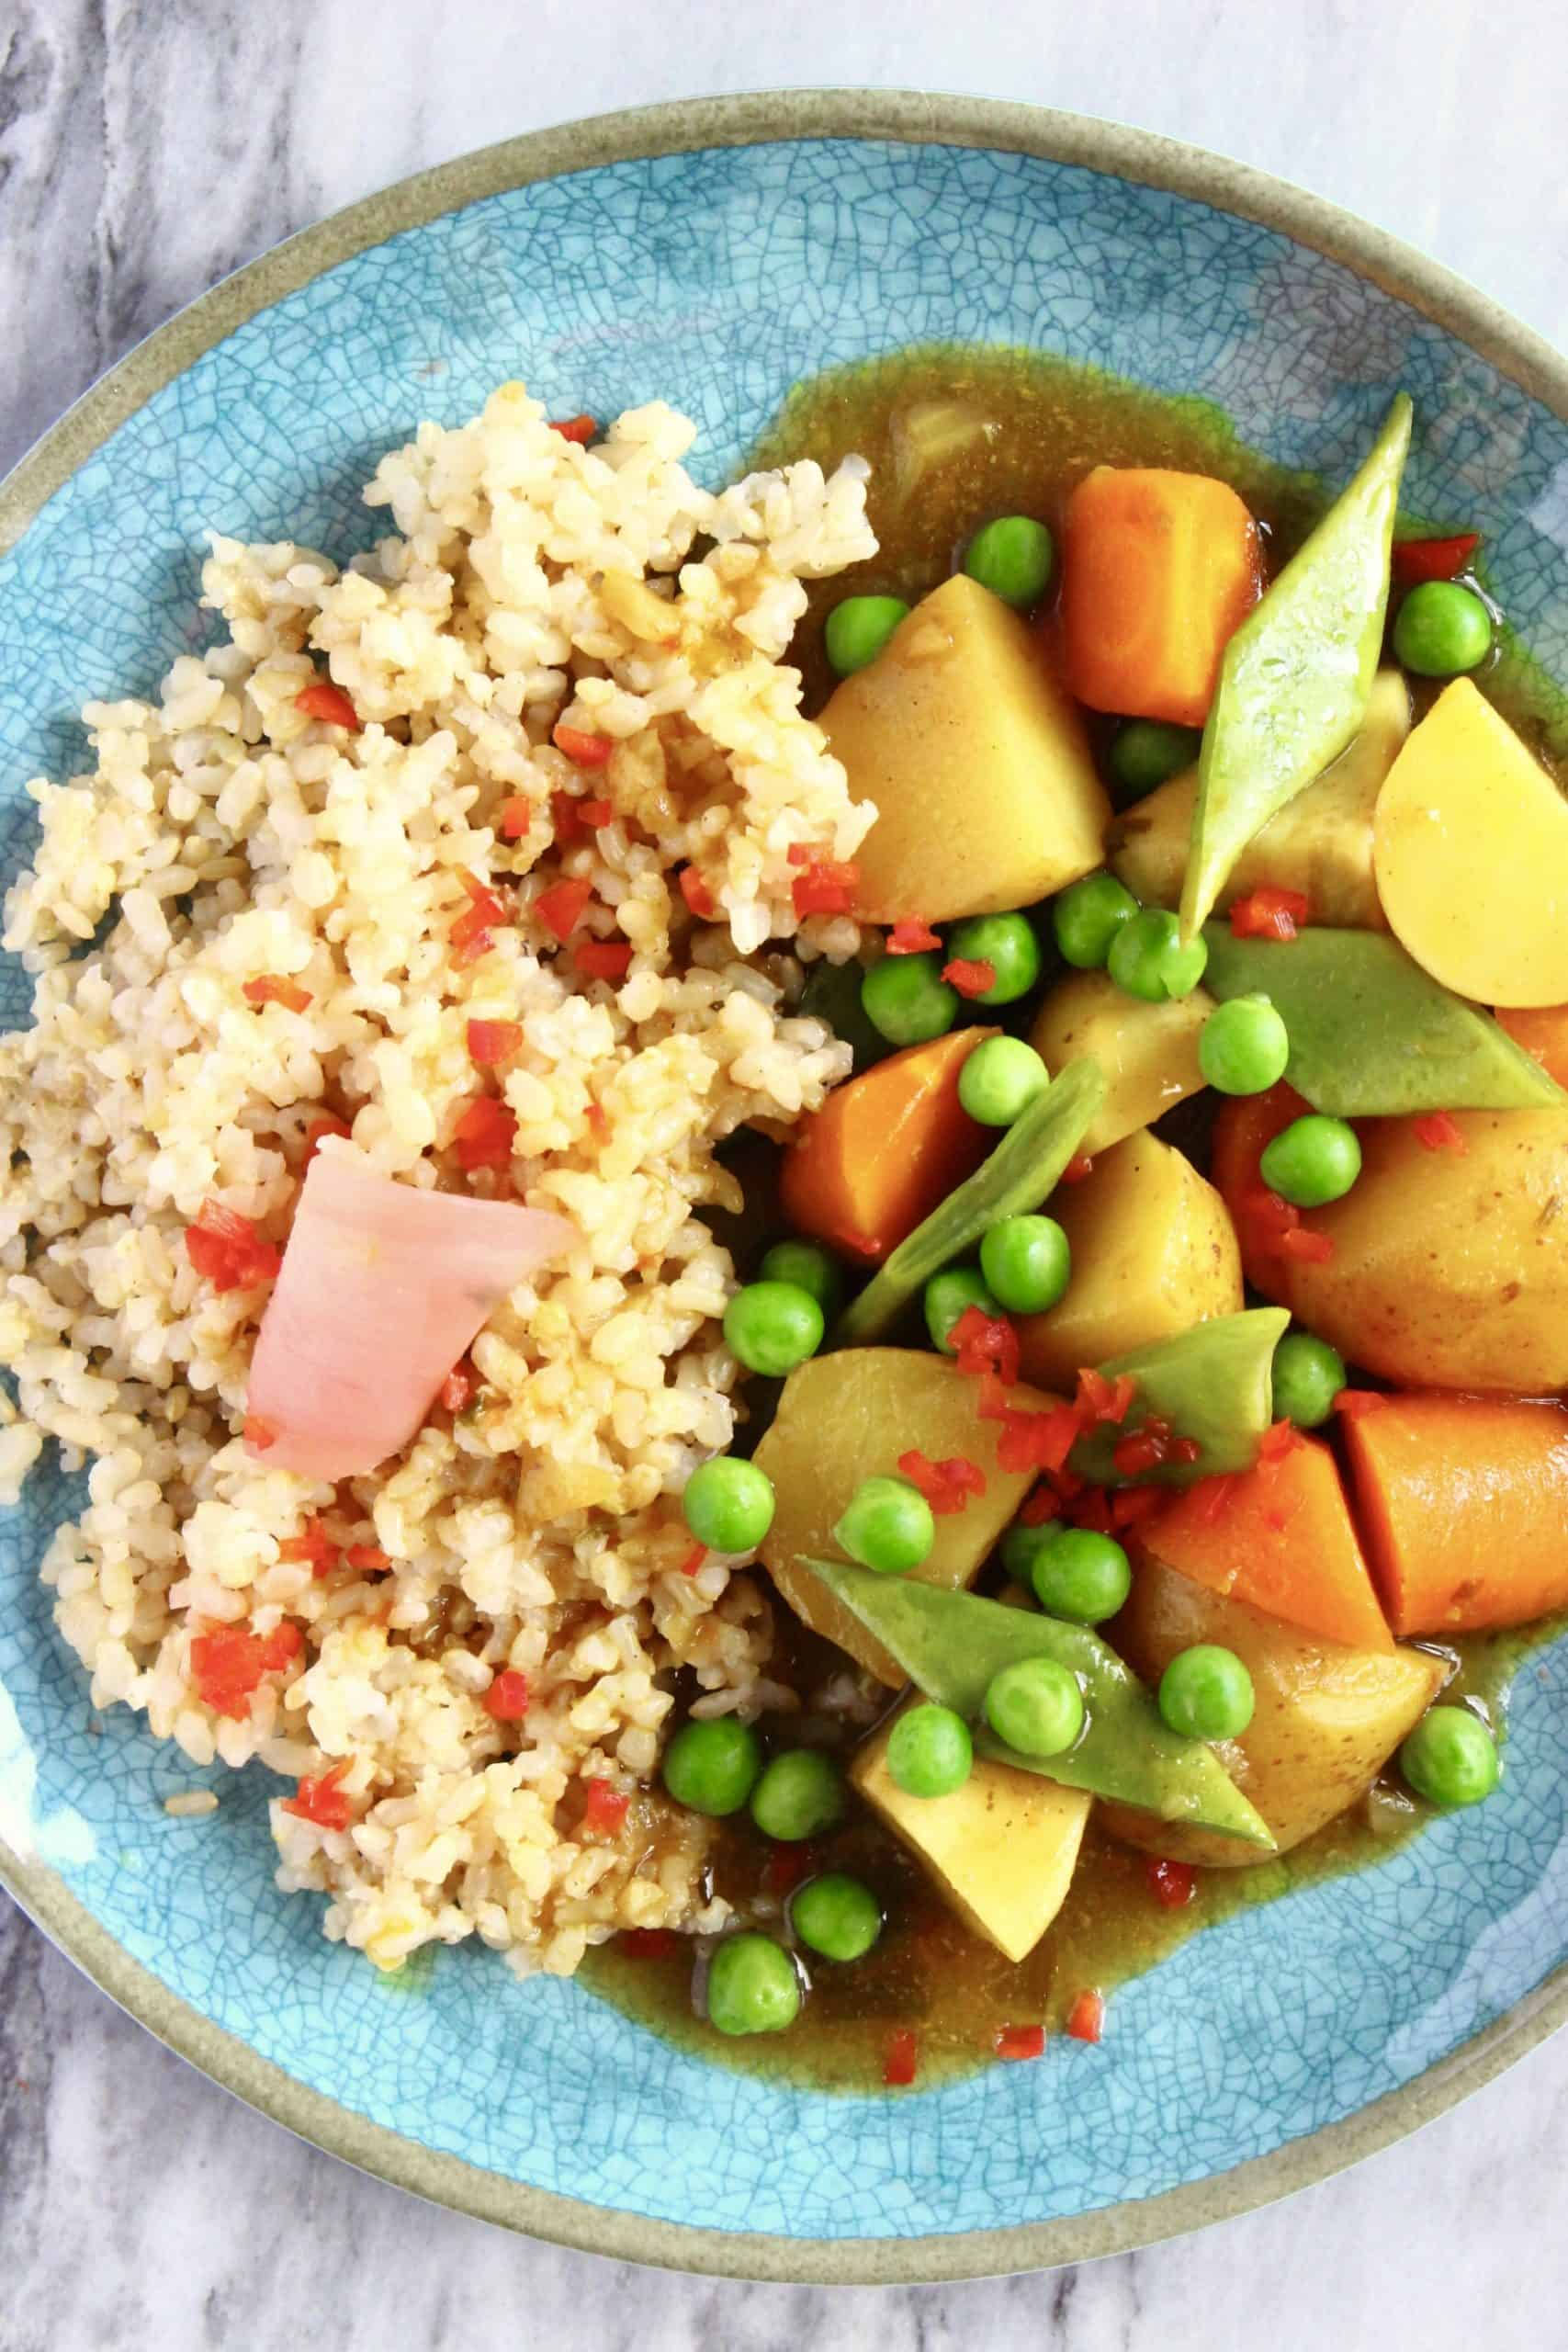 Japanese curry with potatoes, carrot and peas with brown rice on a blue plate